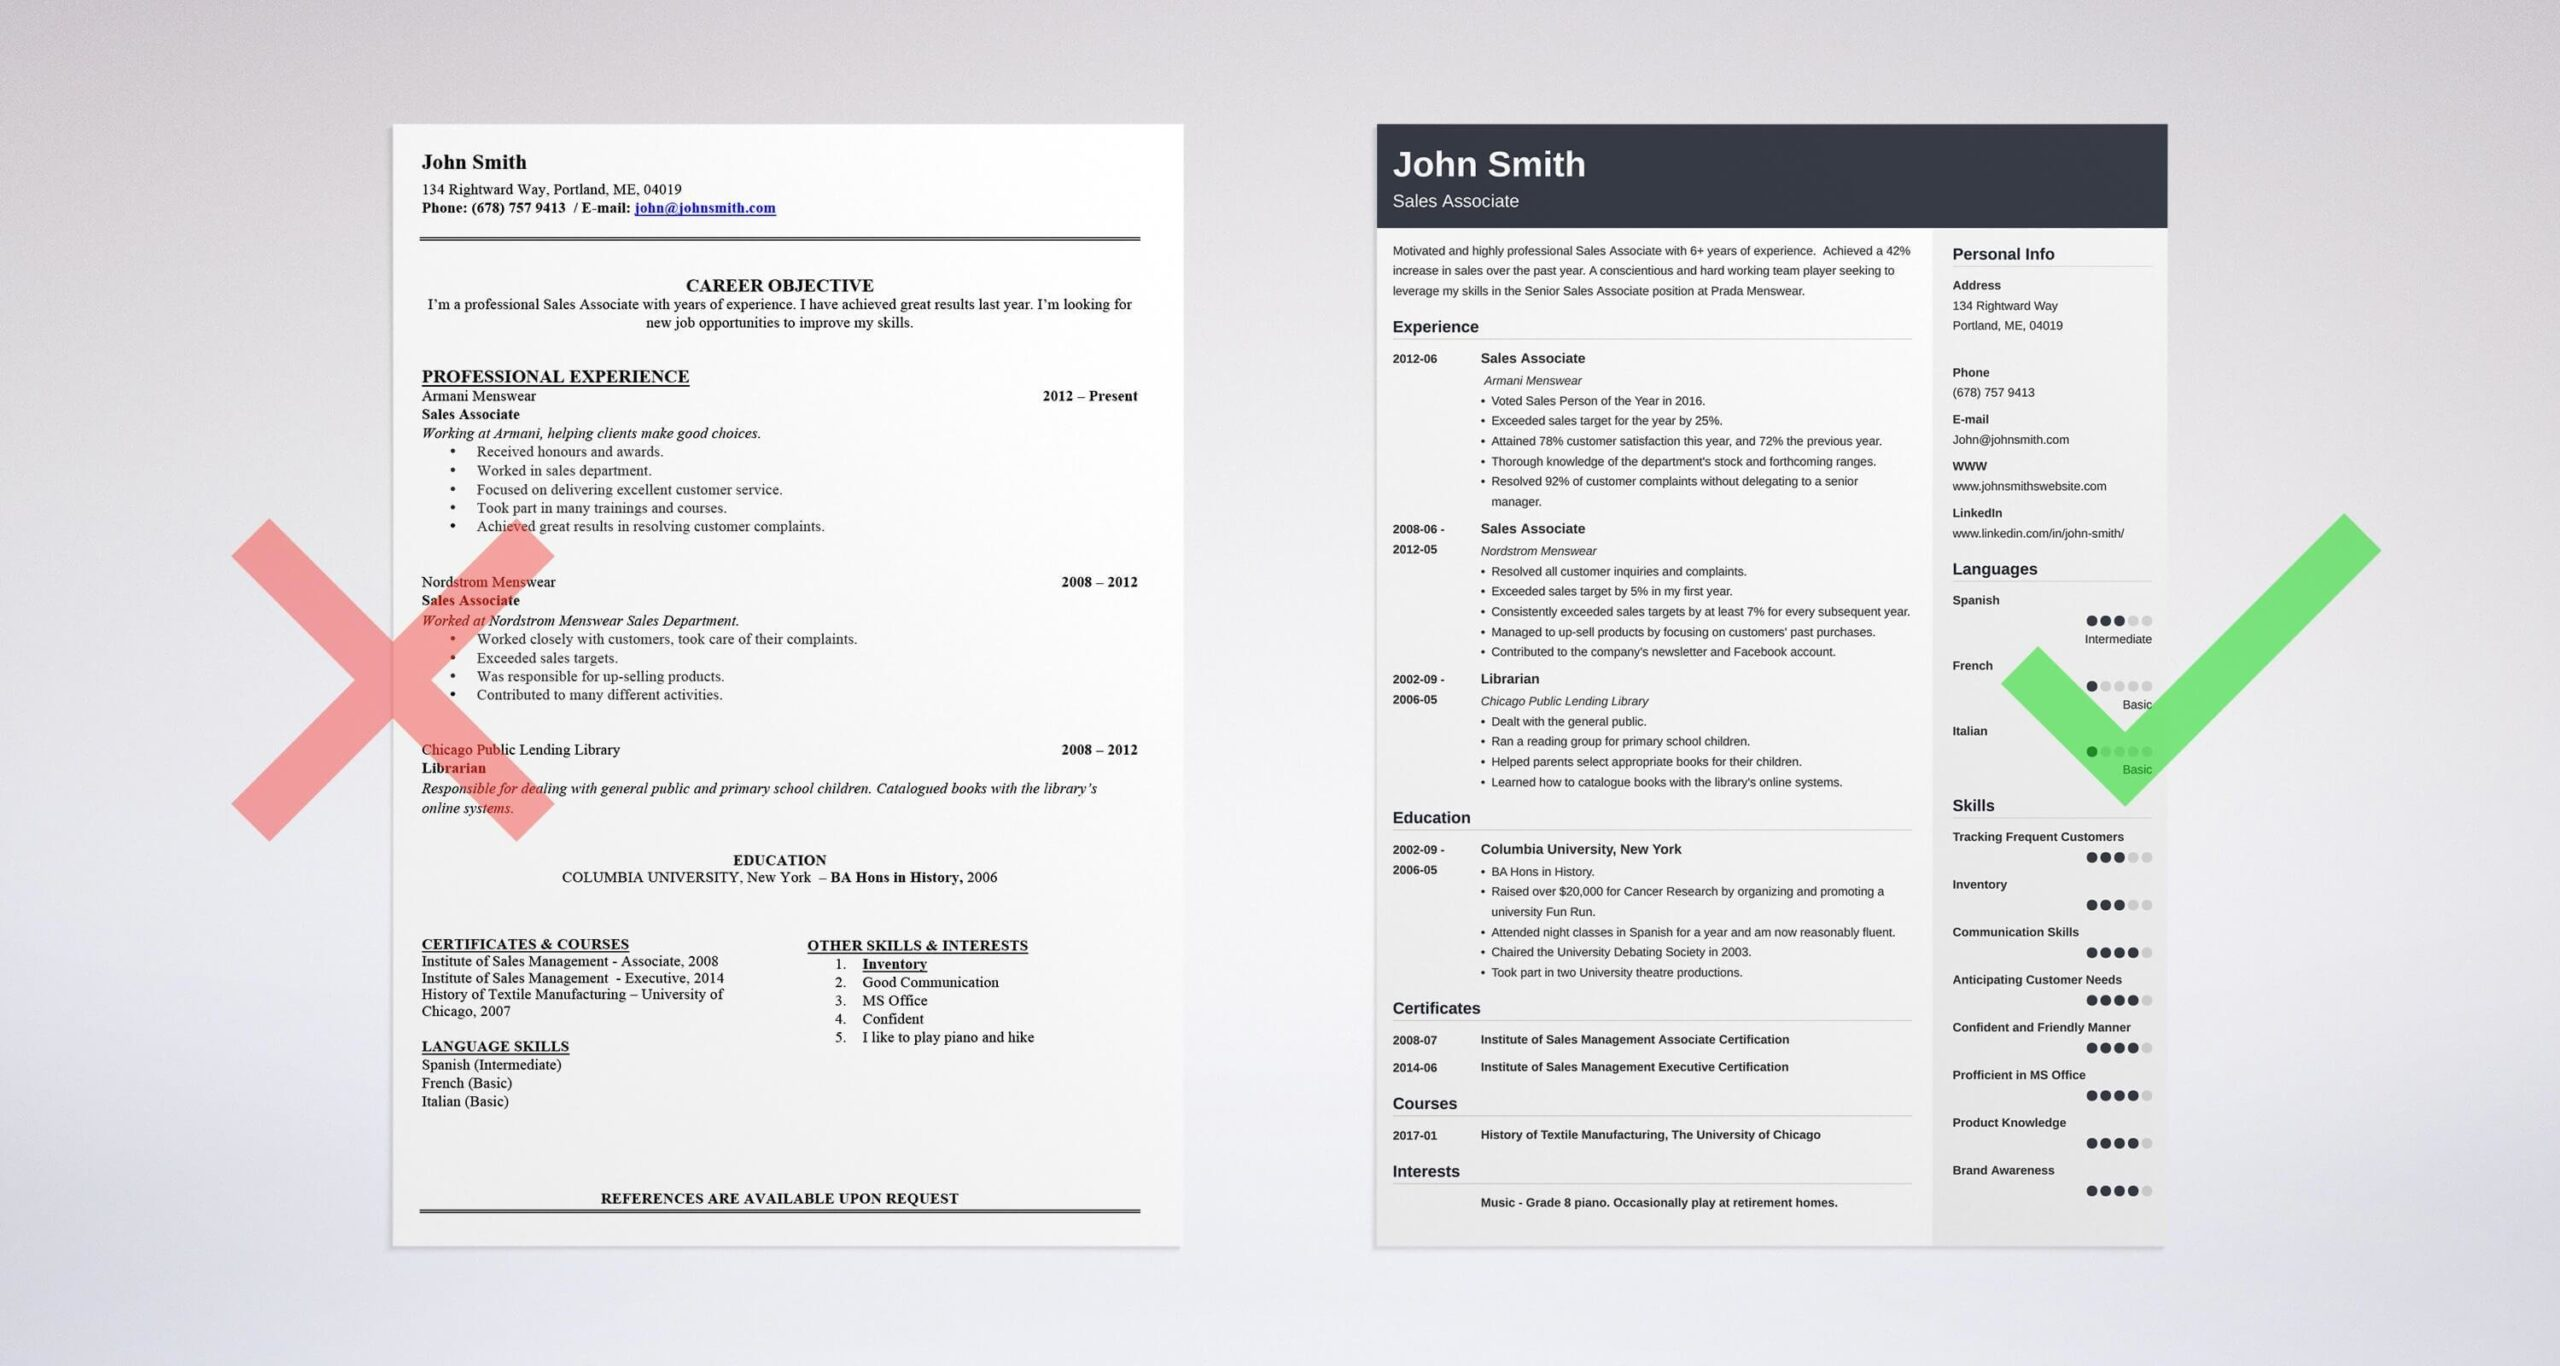 professional resume summary examples statements overview on template cubic nozoom craft Resume Resume Overview Summary